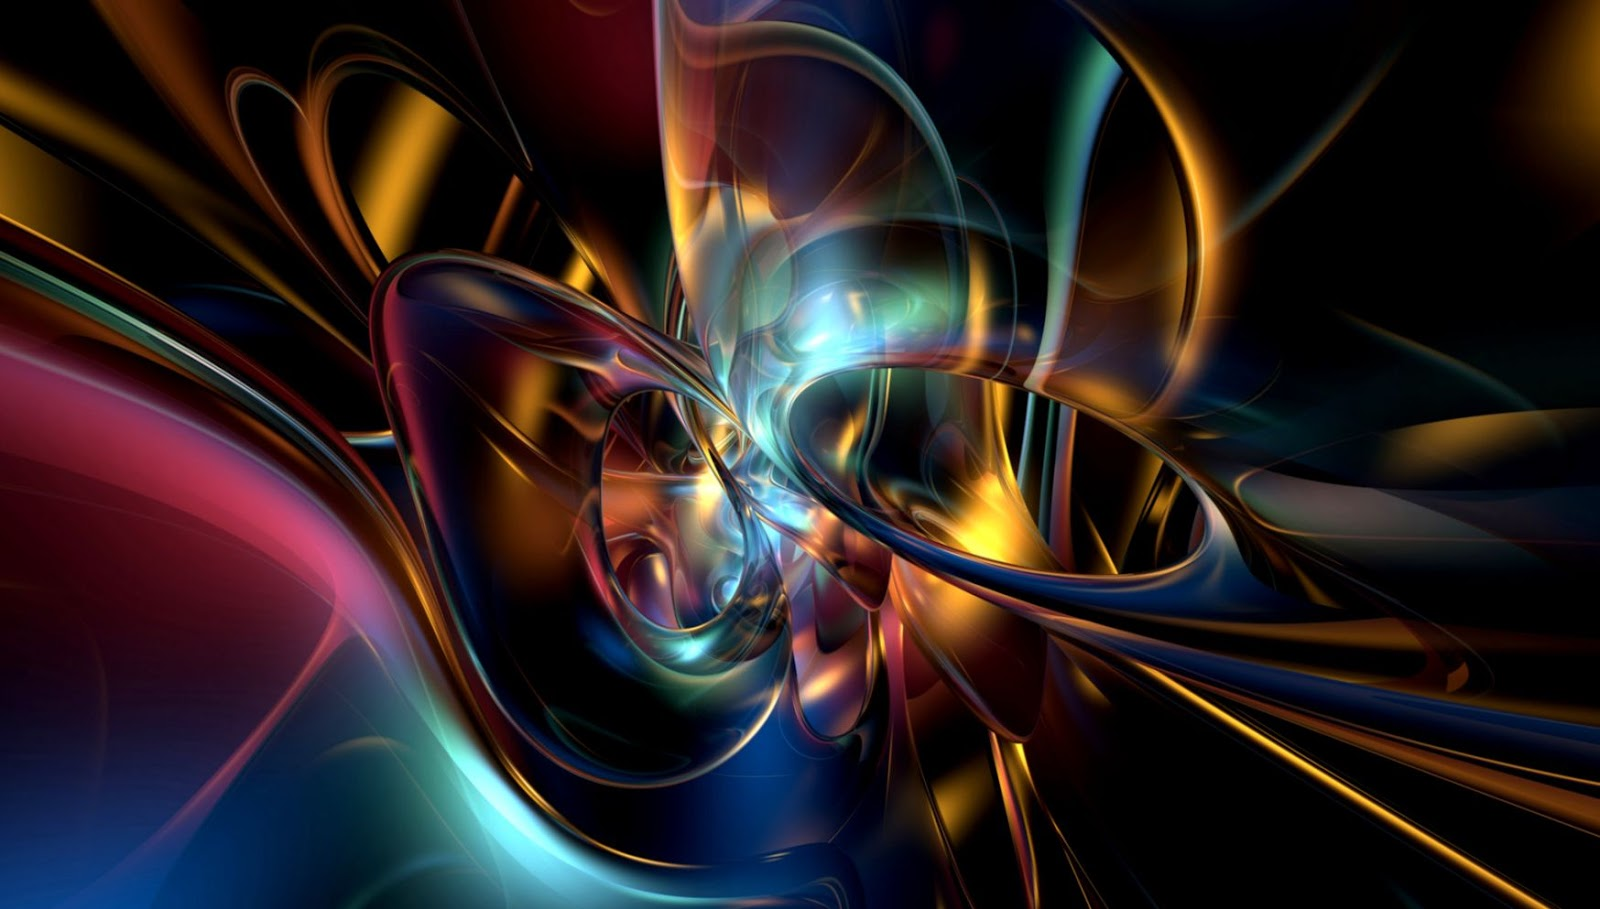 Cool Wallpapers 1920x1080 Abstract Hd Pack Wallpapers